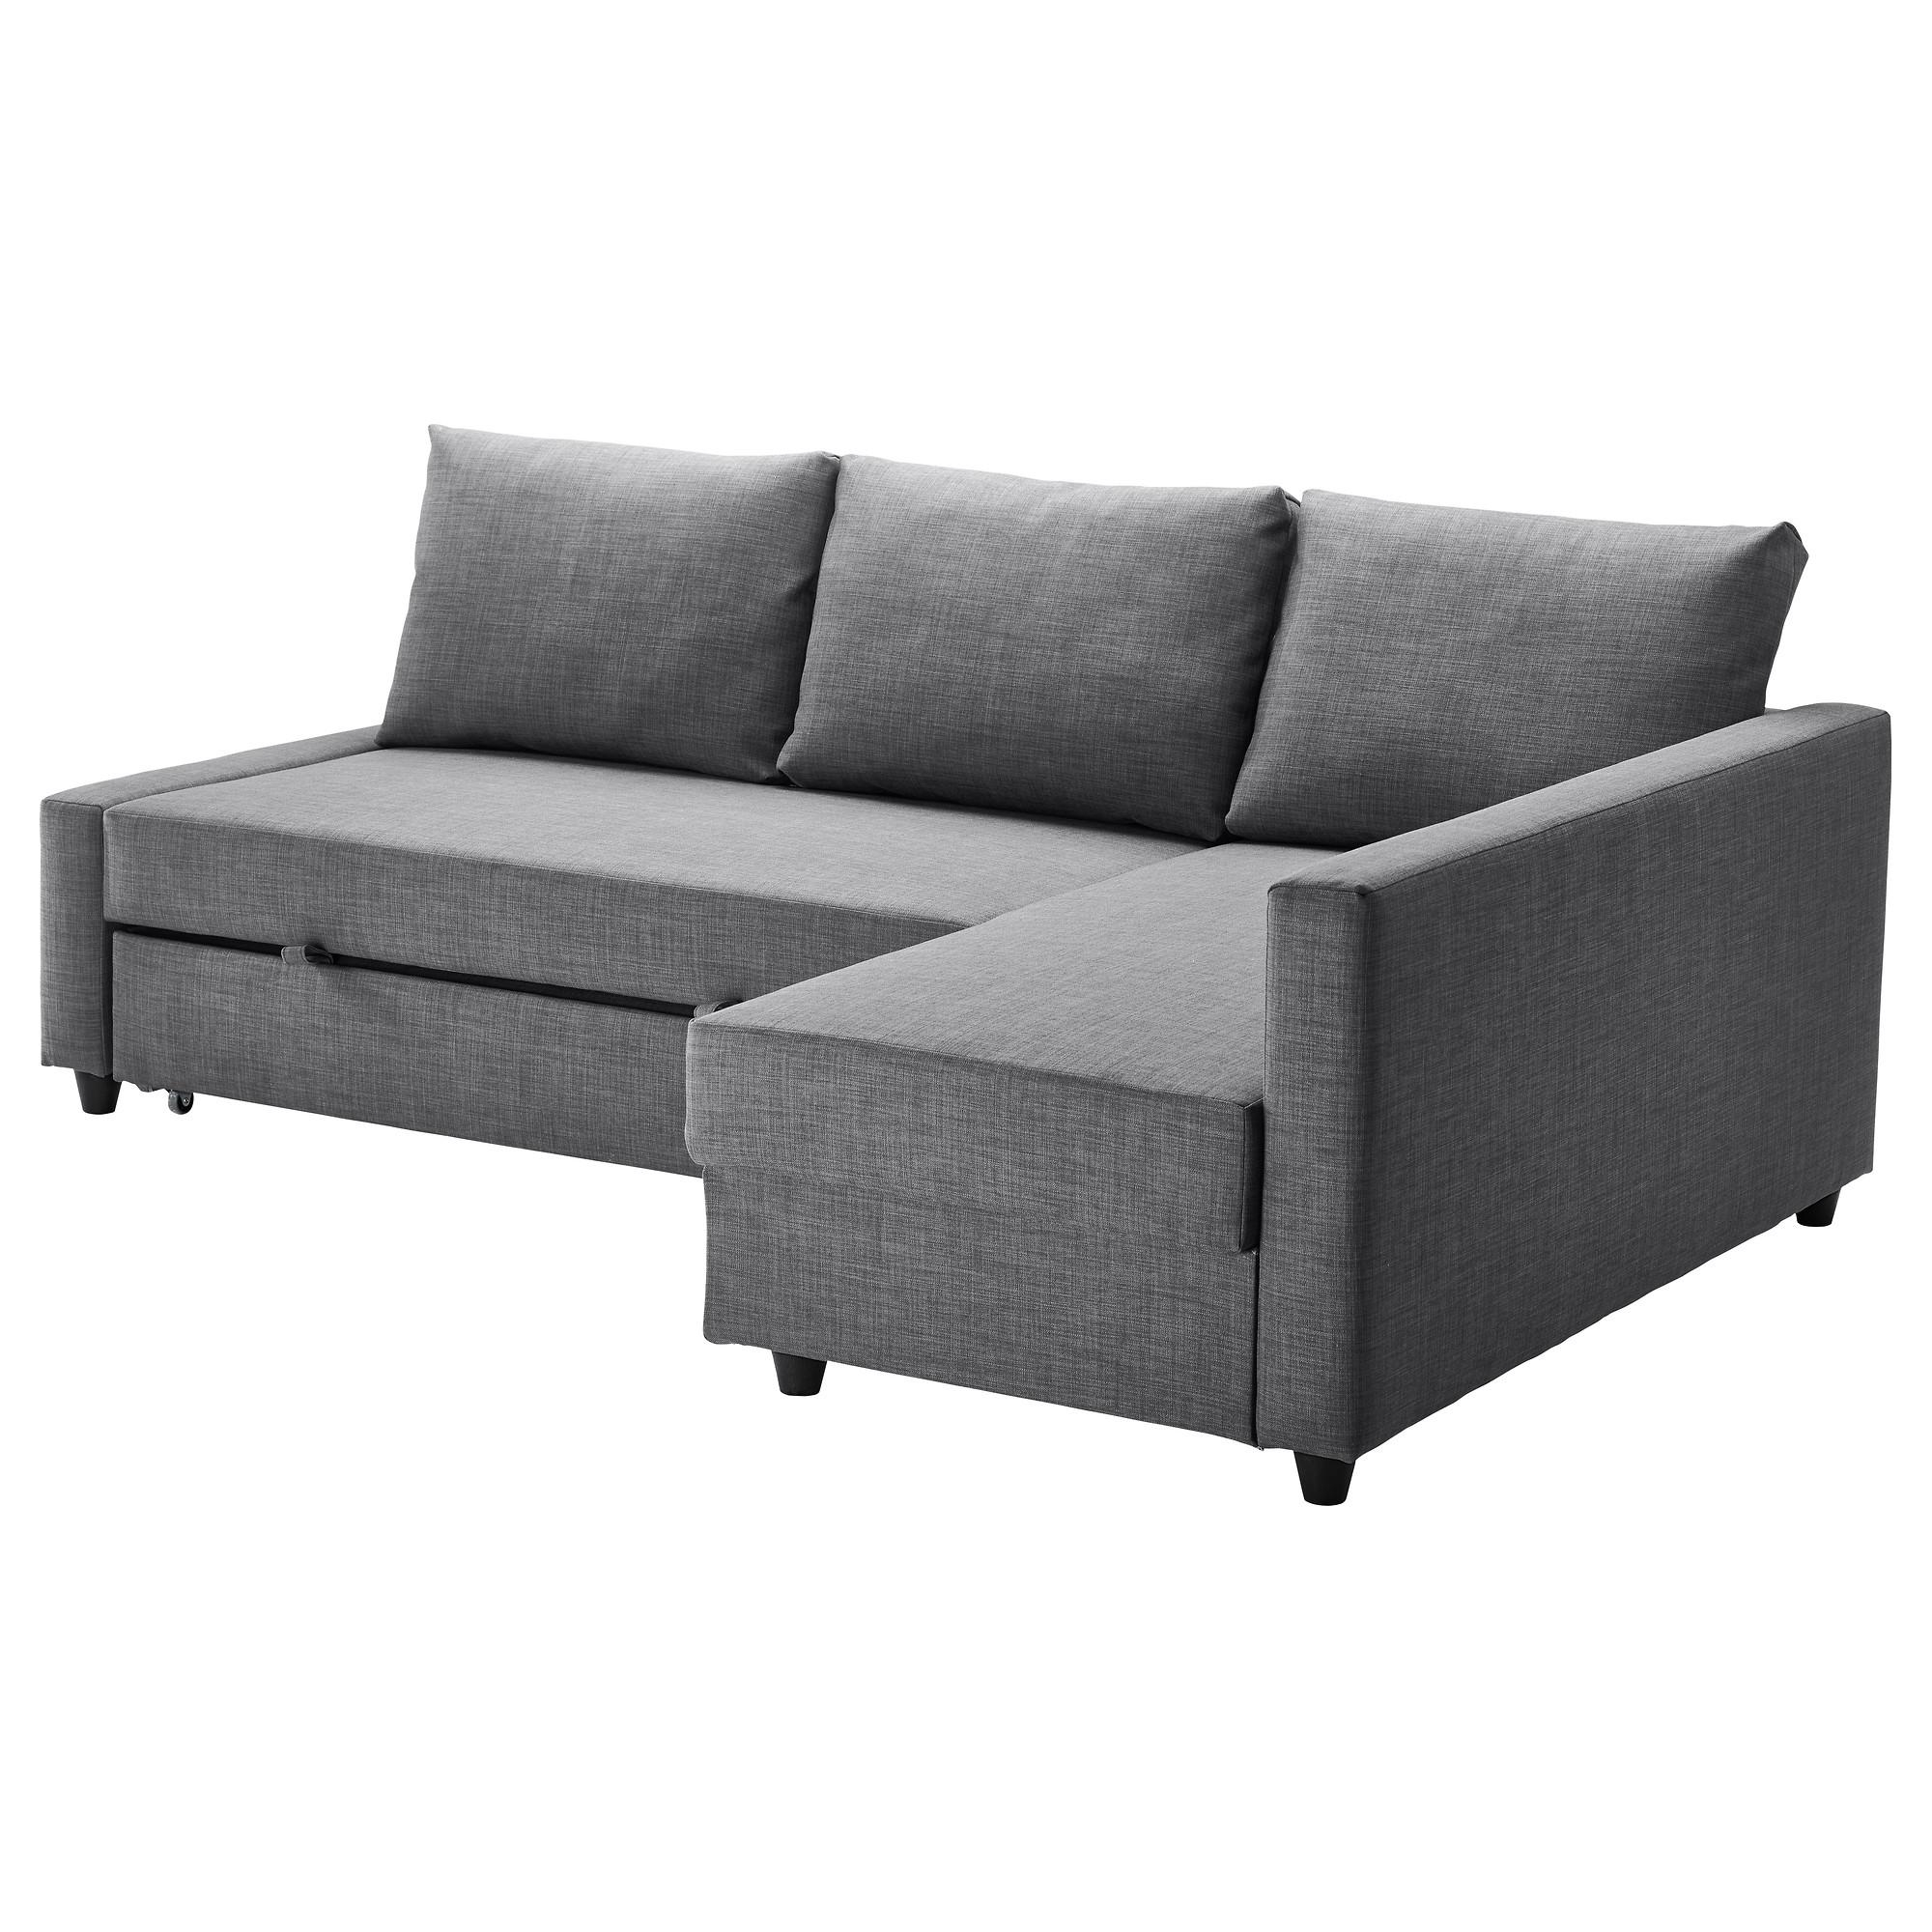 Friheten Corner Sofa Bed With Storage Skiftebo Dark Grey – Ikea With Manstad Sofa Bed With Storage From Ikea (View 16 of 20)